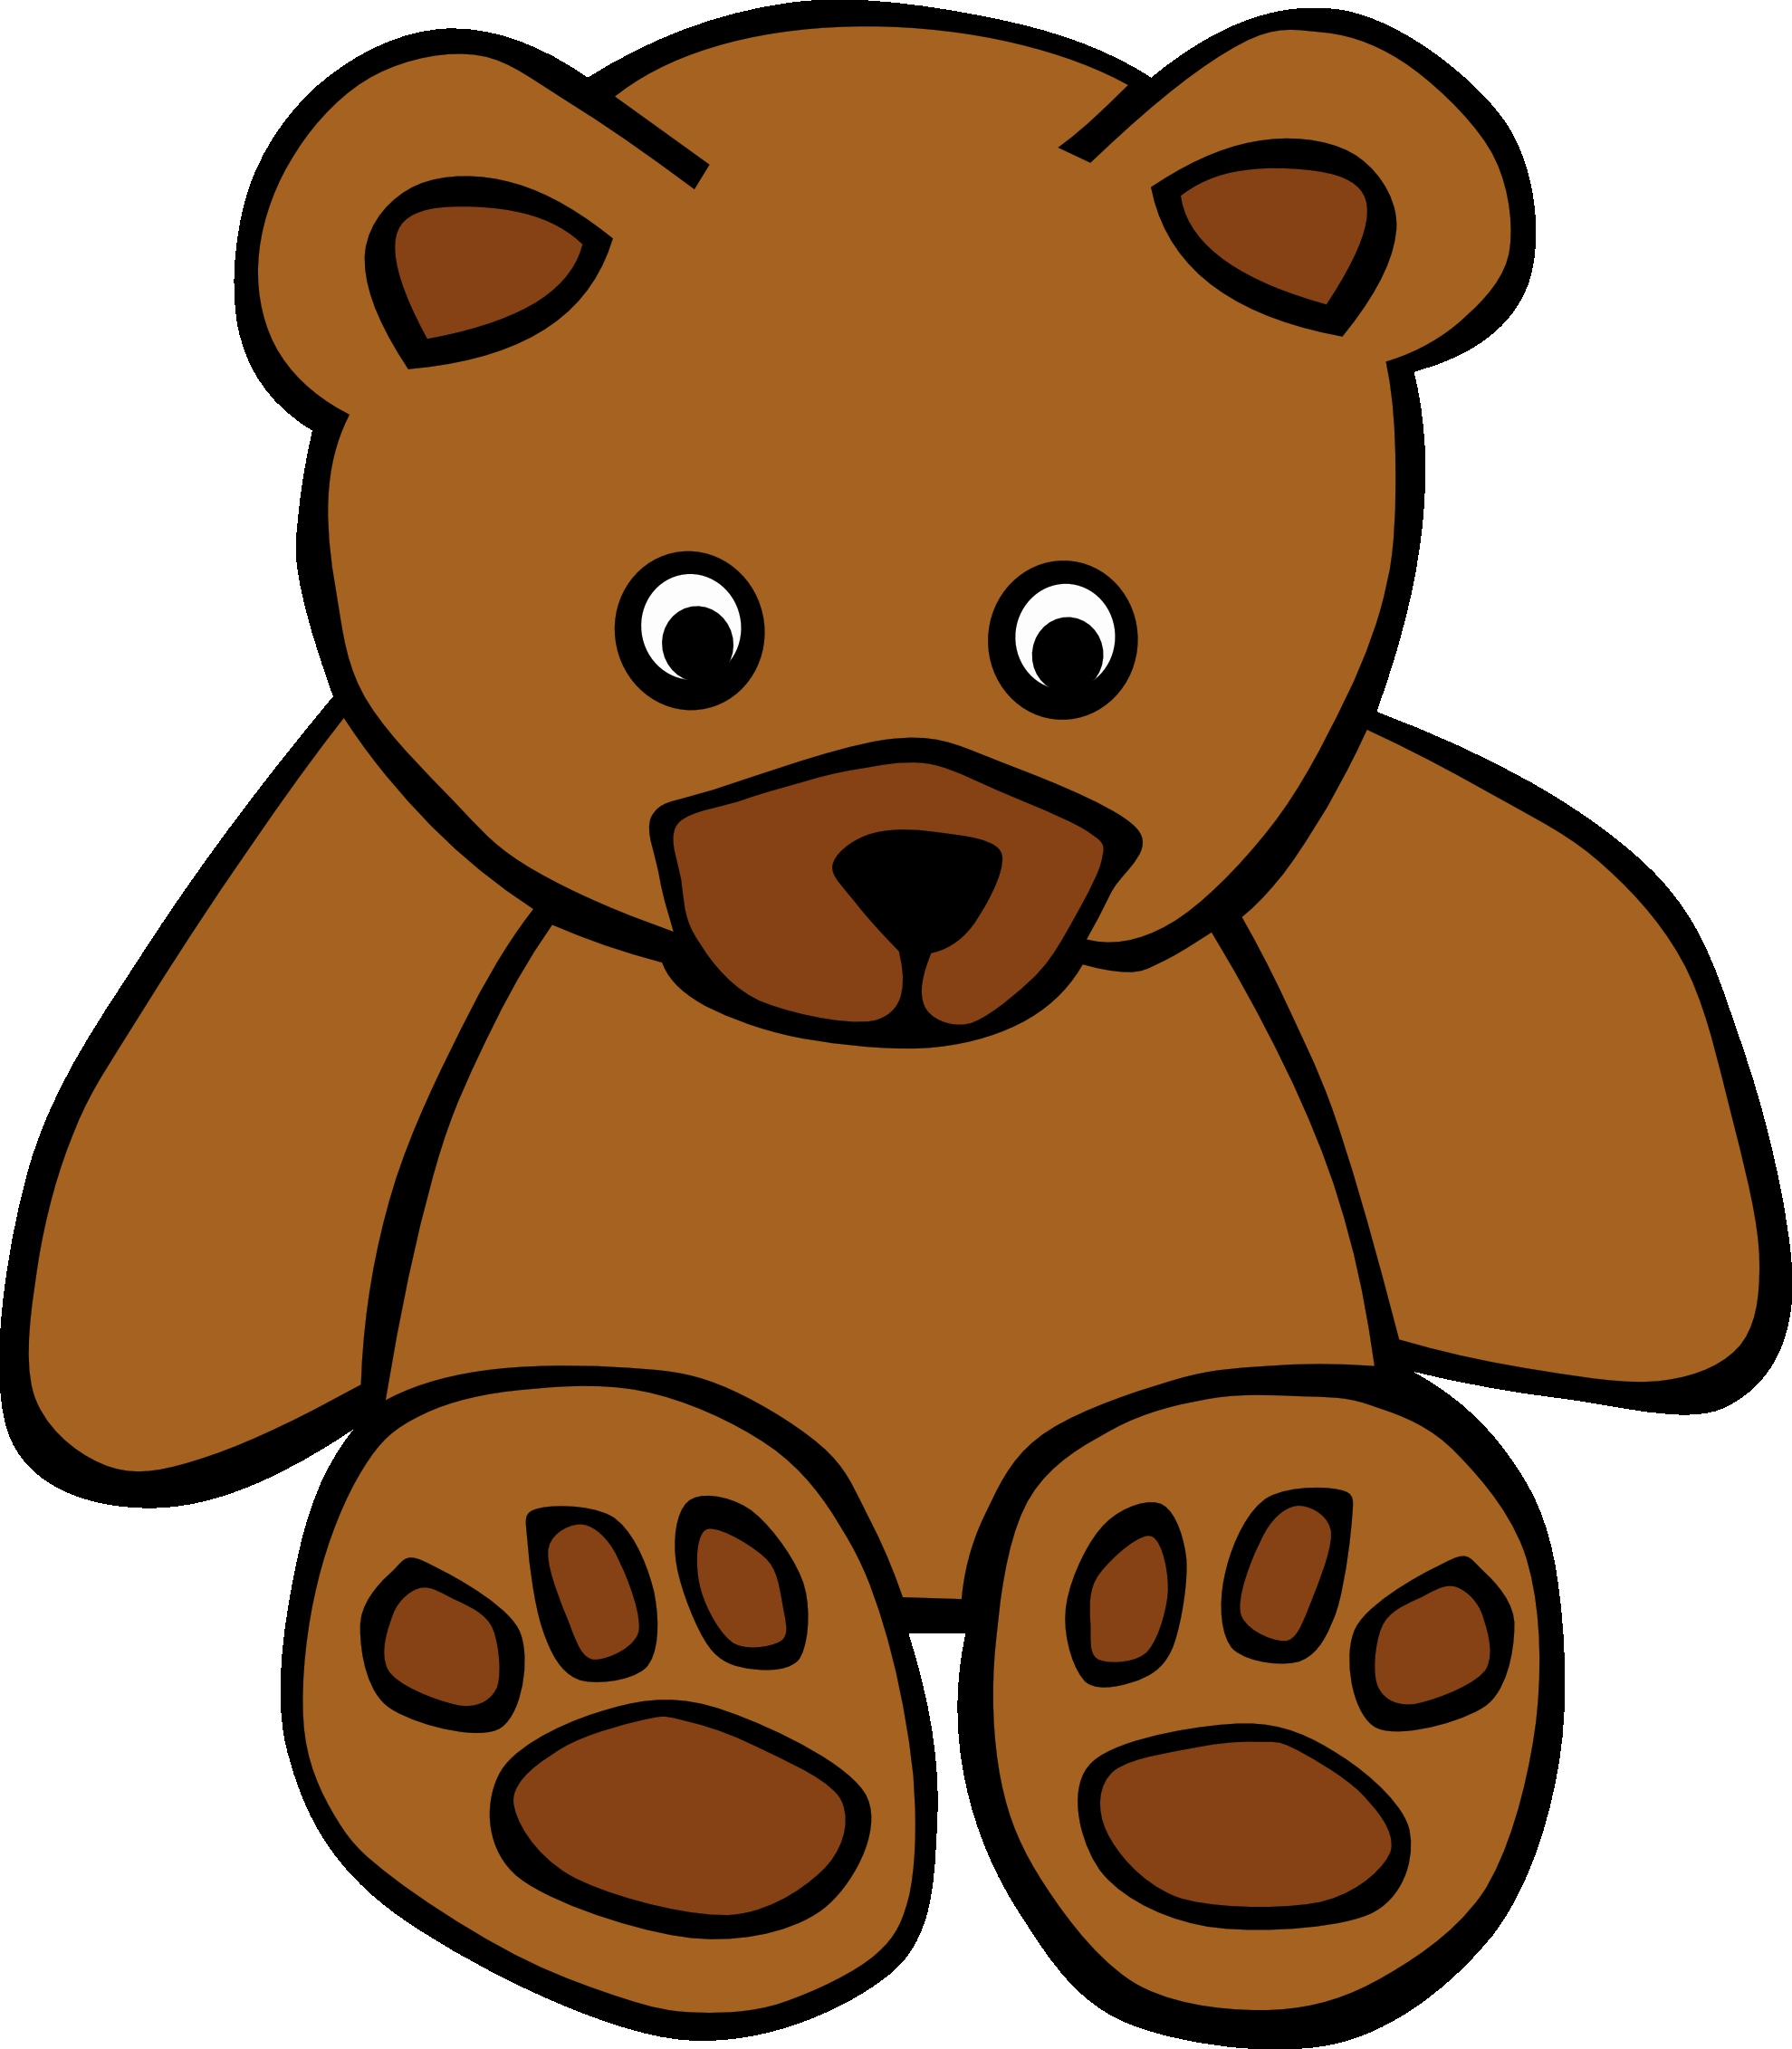 Brown clipart brown object. Bear standing up fresh